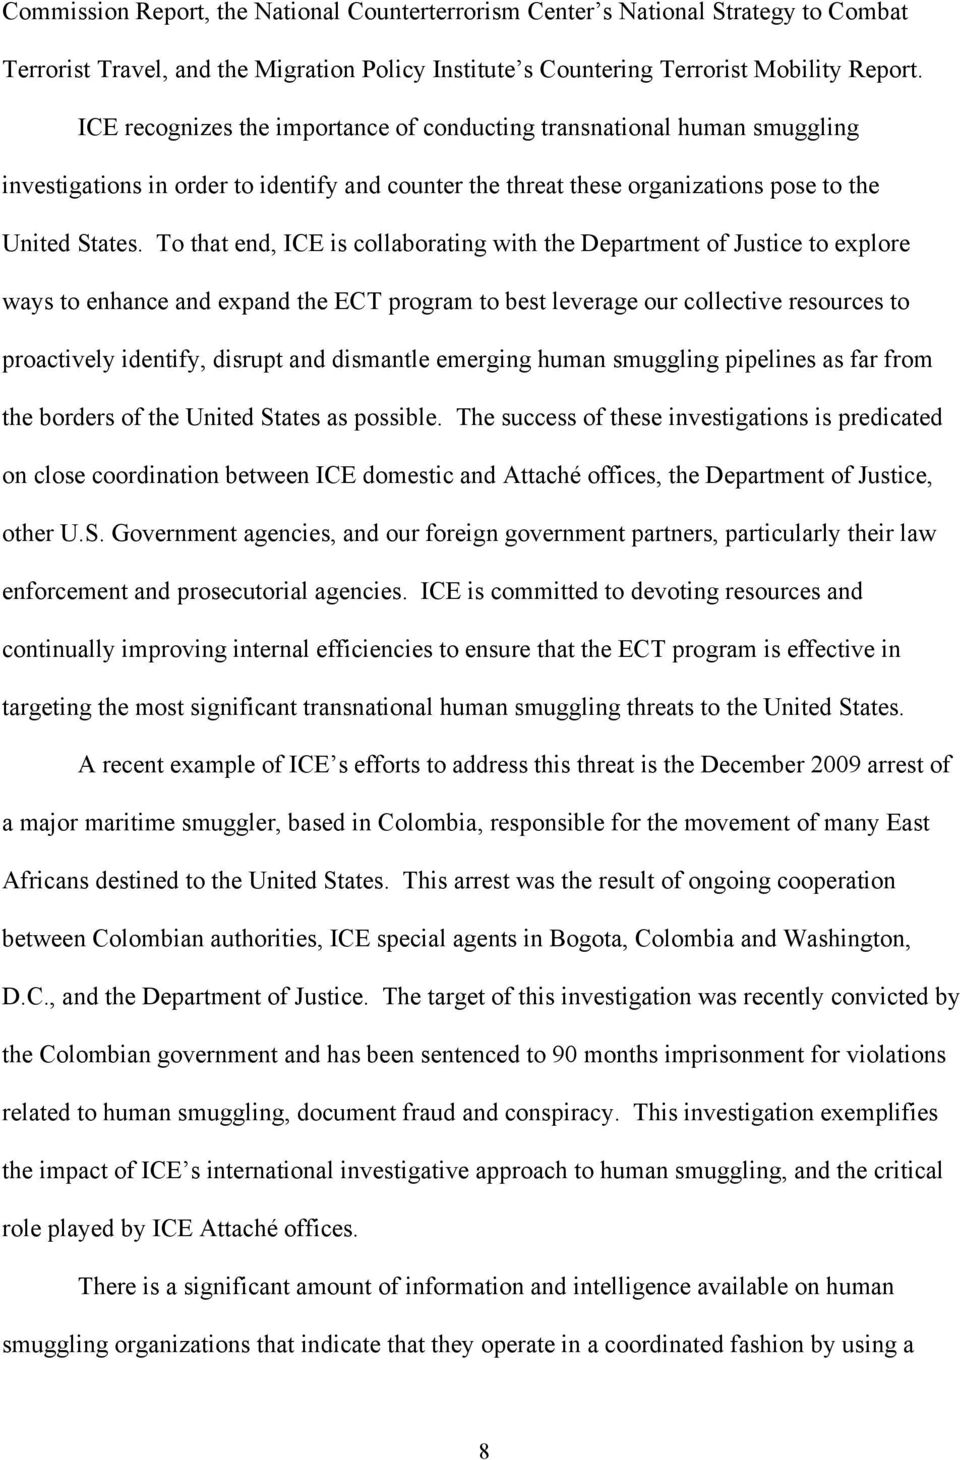 To that end, ICE is collaborating with the Department of Justice to explore ways to enhance and expand the ECT program to best leverage our collective resources to proactively identify, disrupt and